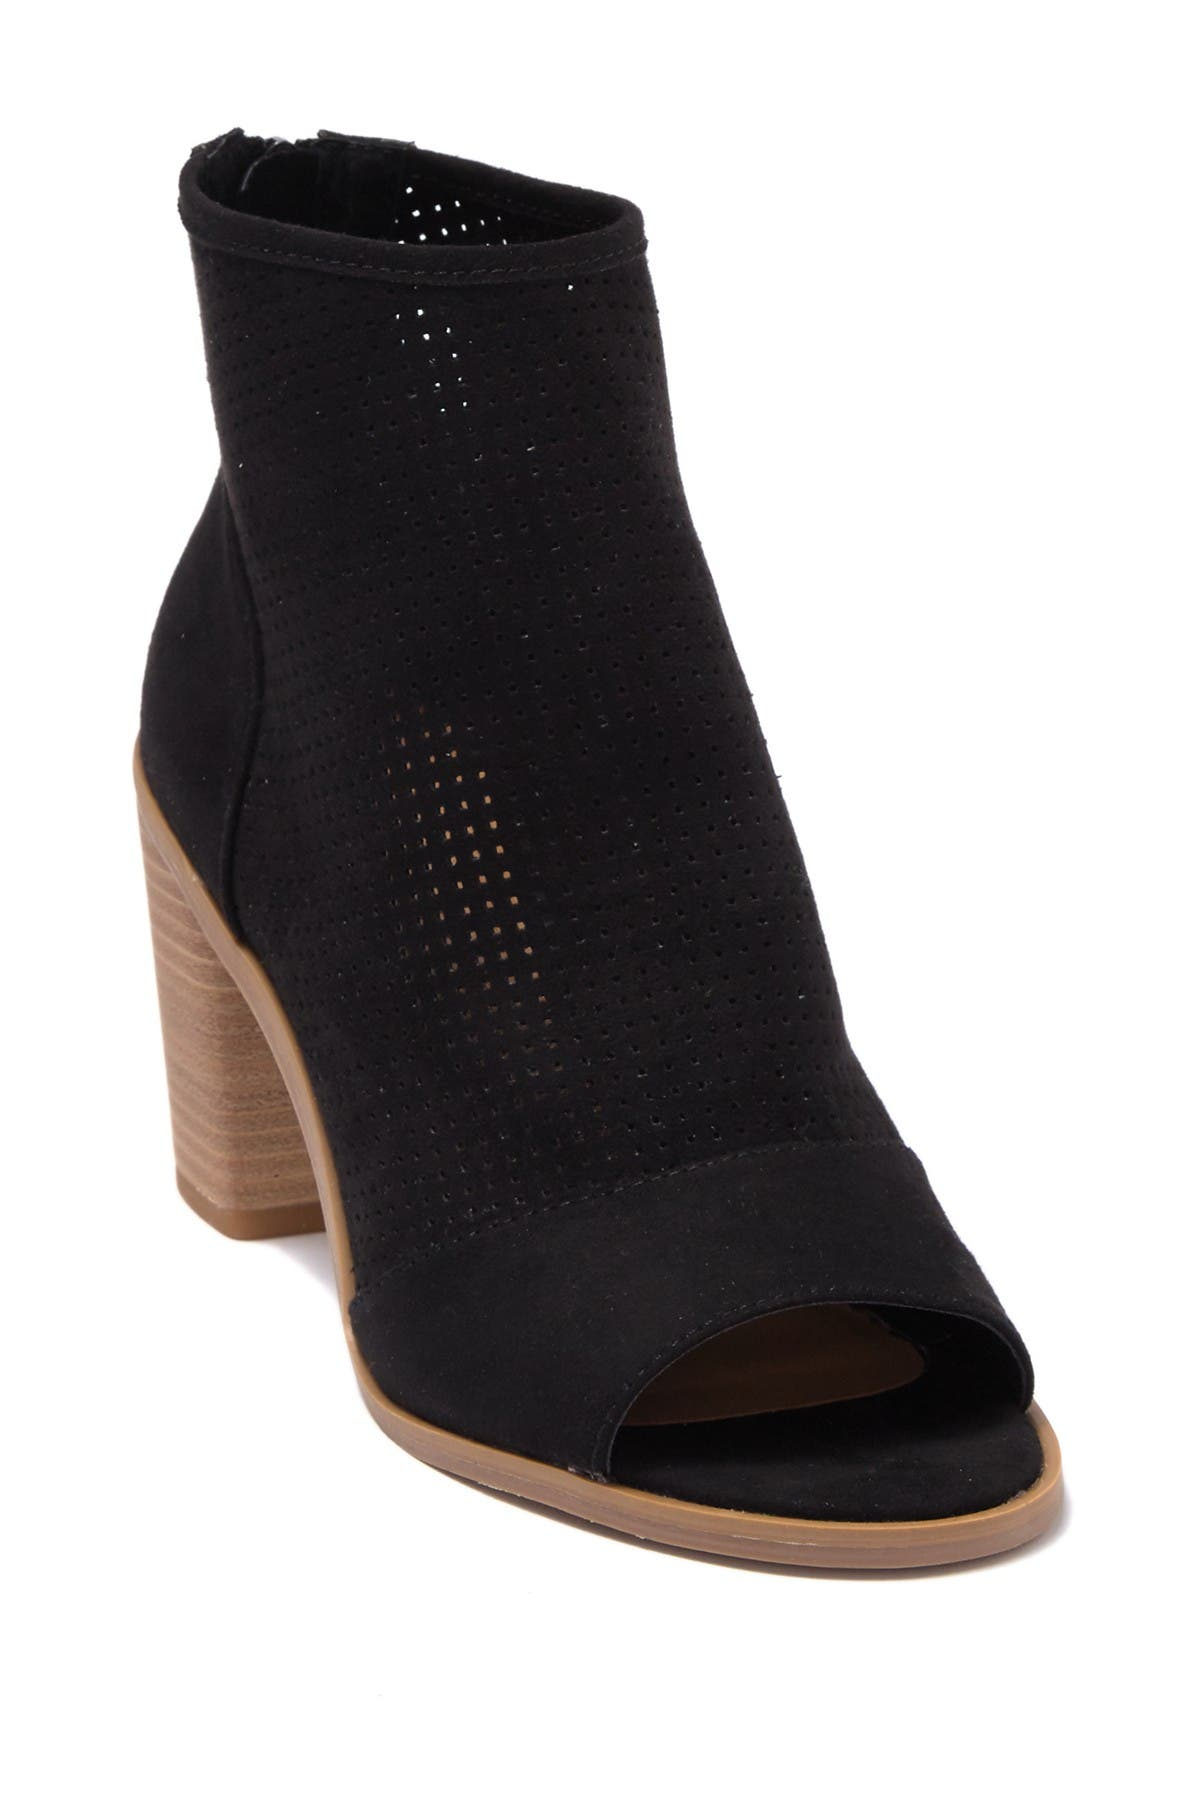 Abound   Perforated Peep Toe Bootie